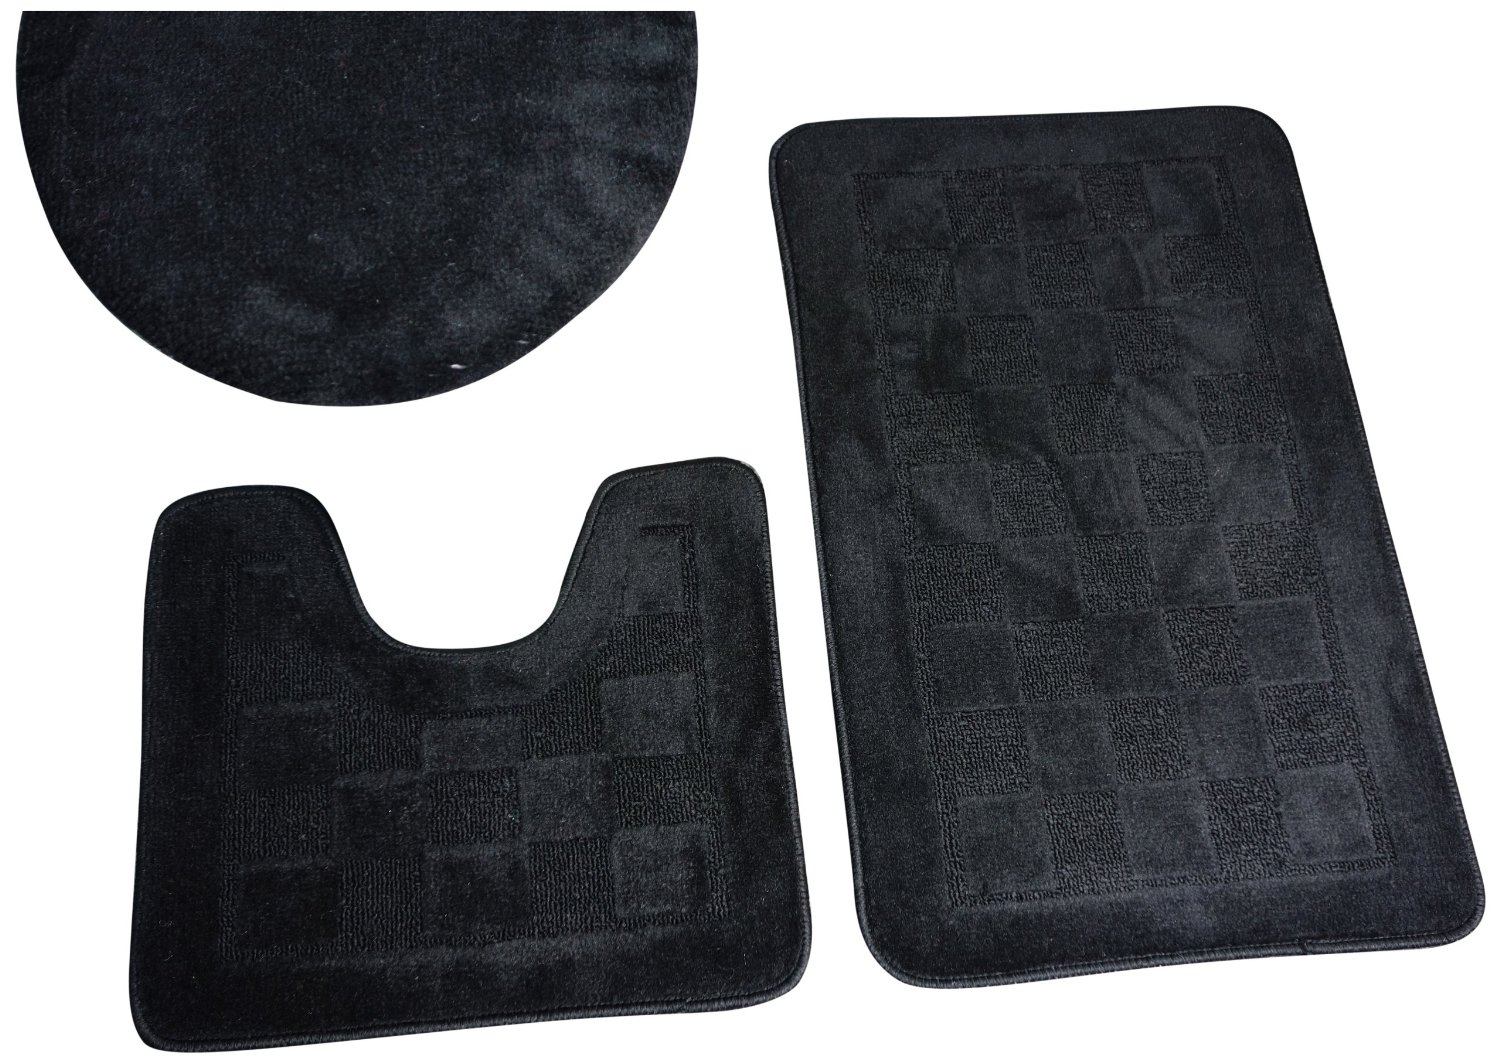 Permalink to Black And White Bathroom Rug Sets